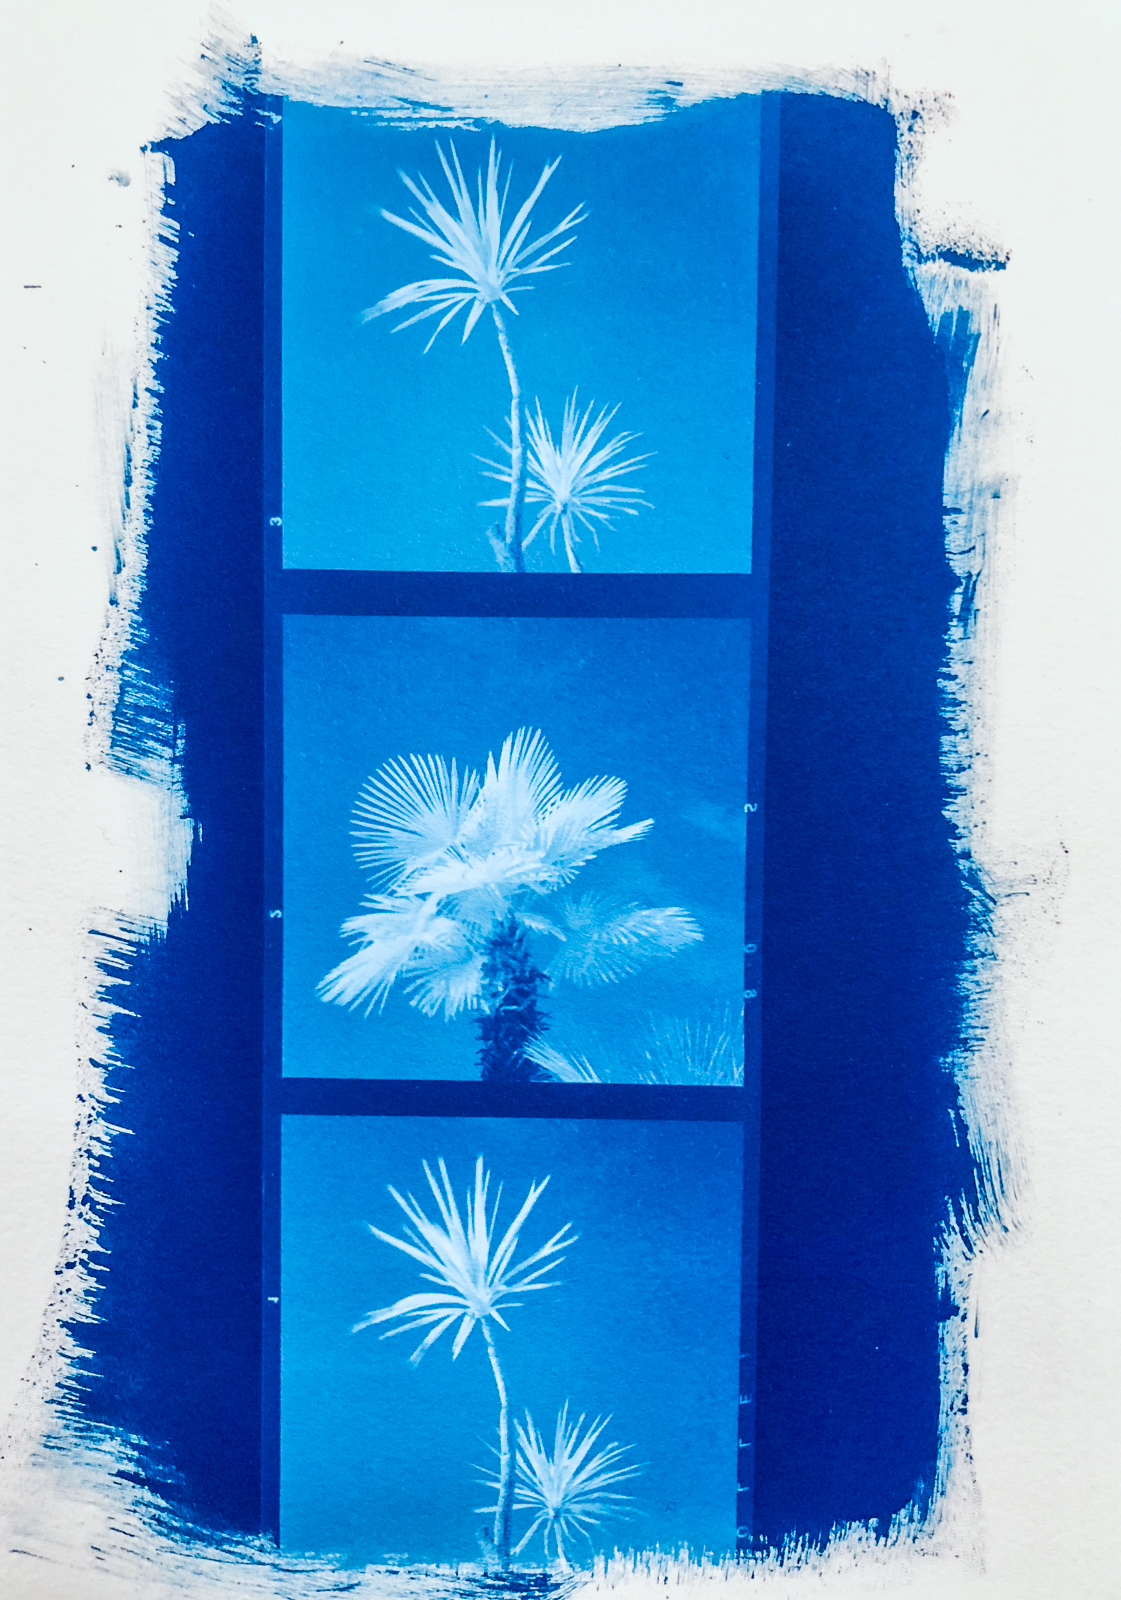 3-Cyanotype three trees